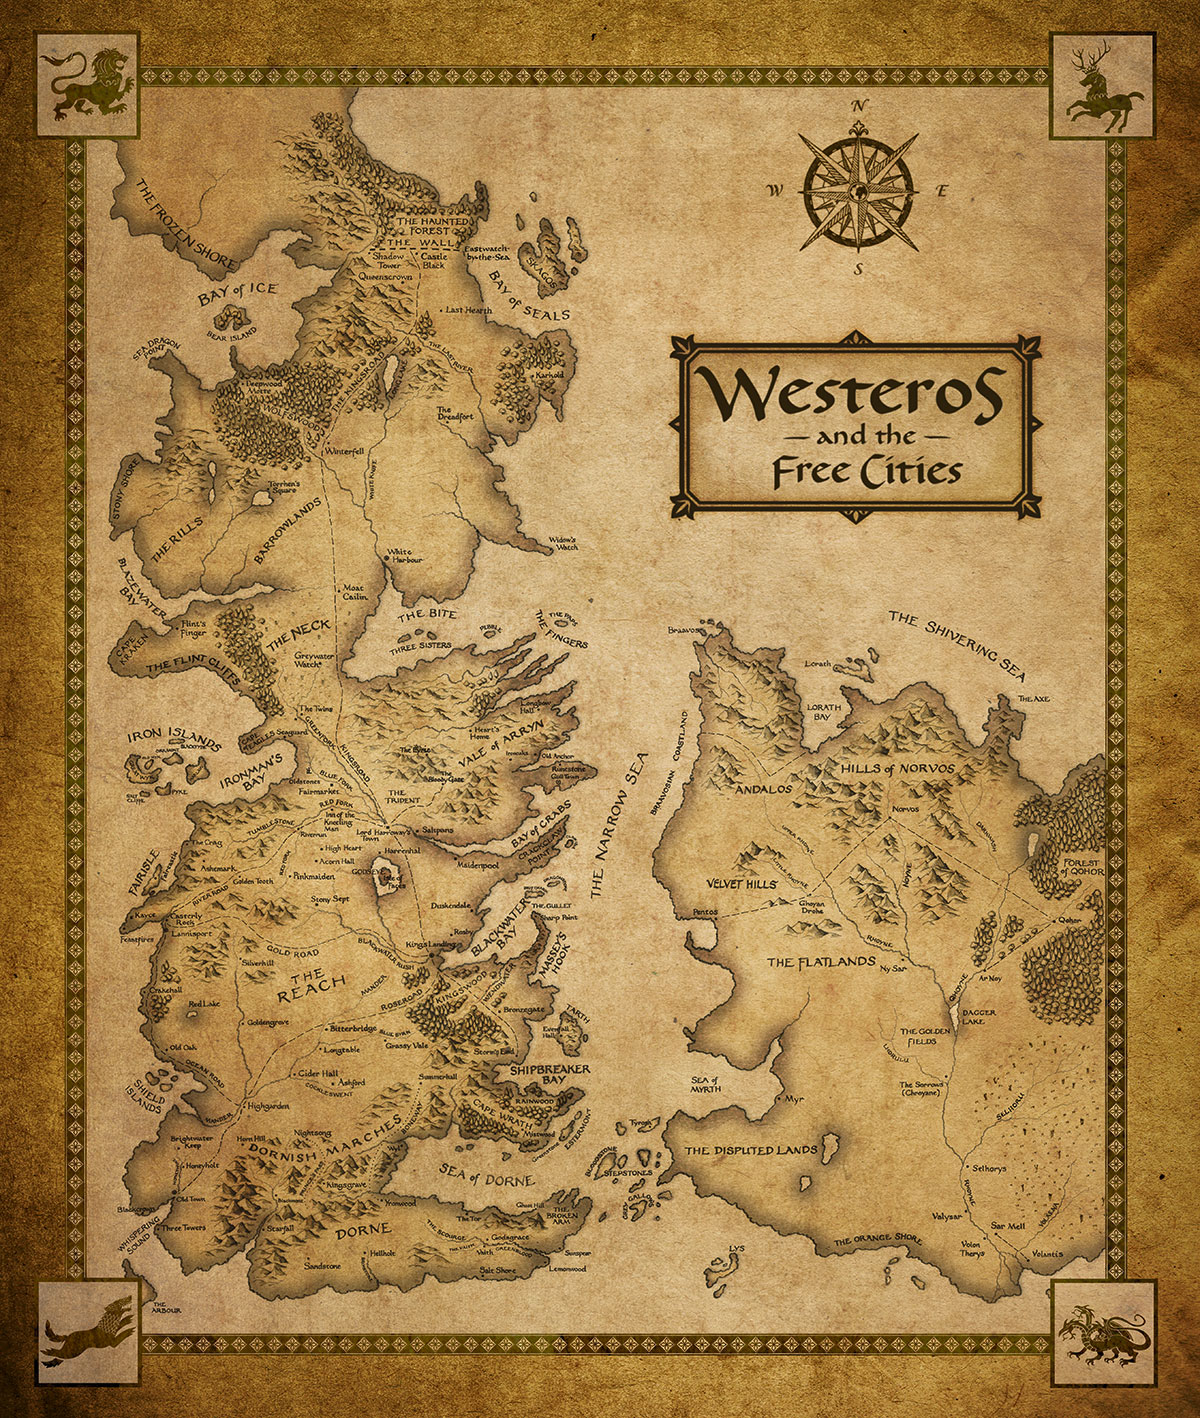 Westeros and the Free Cities map